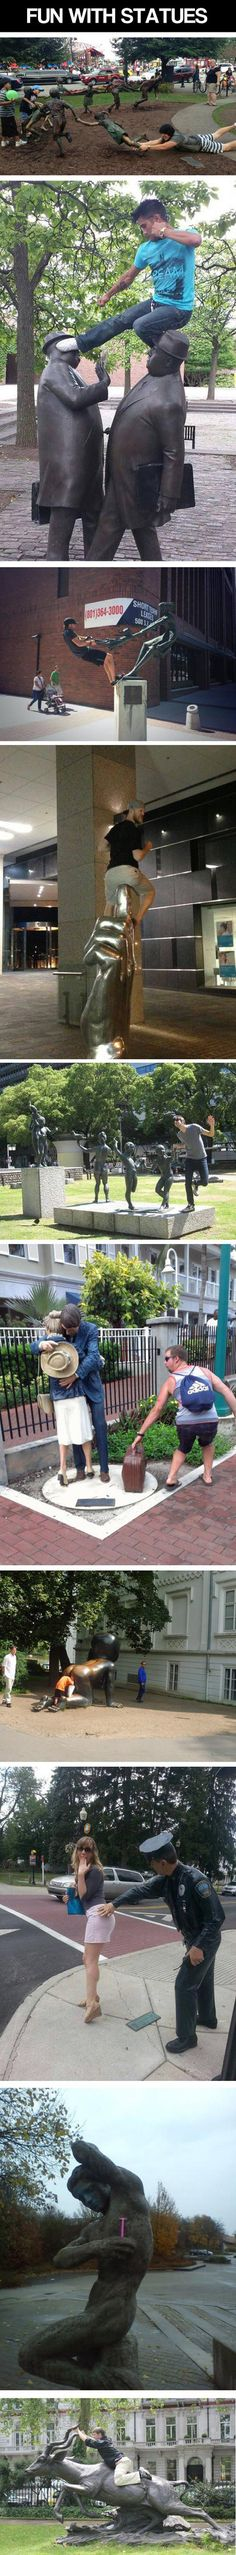 What's The Point Of Statues If You Can't Have Fun With Them? – 10 Pics